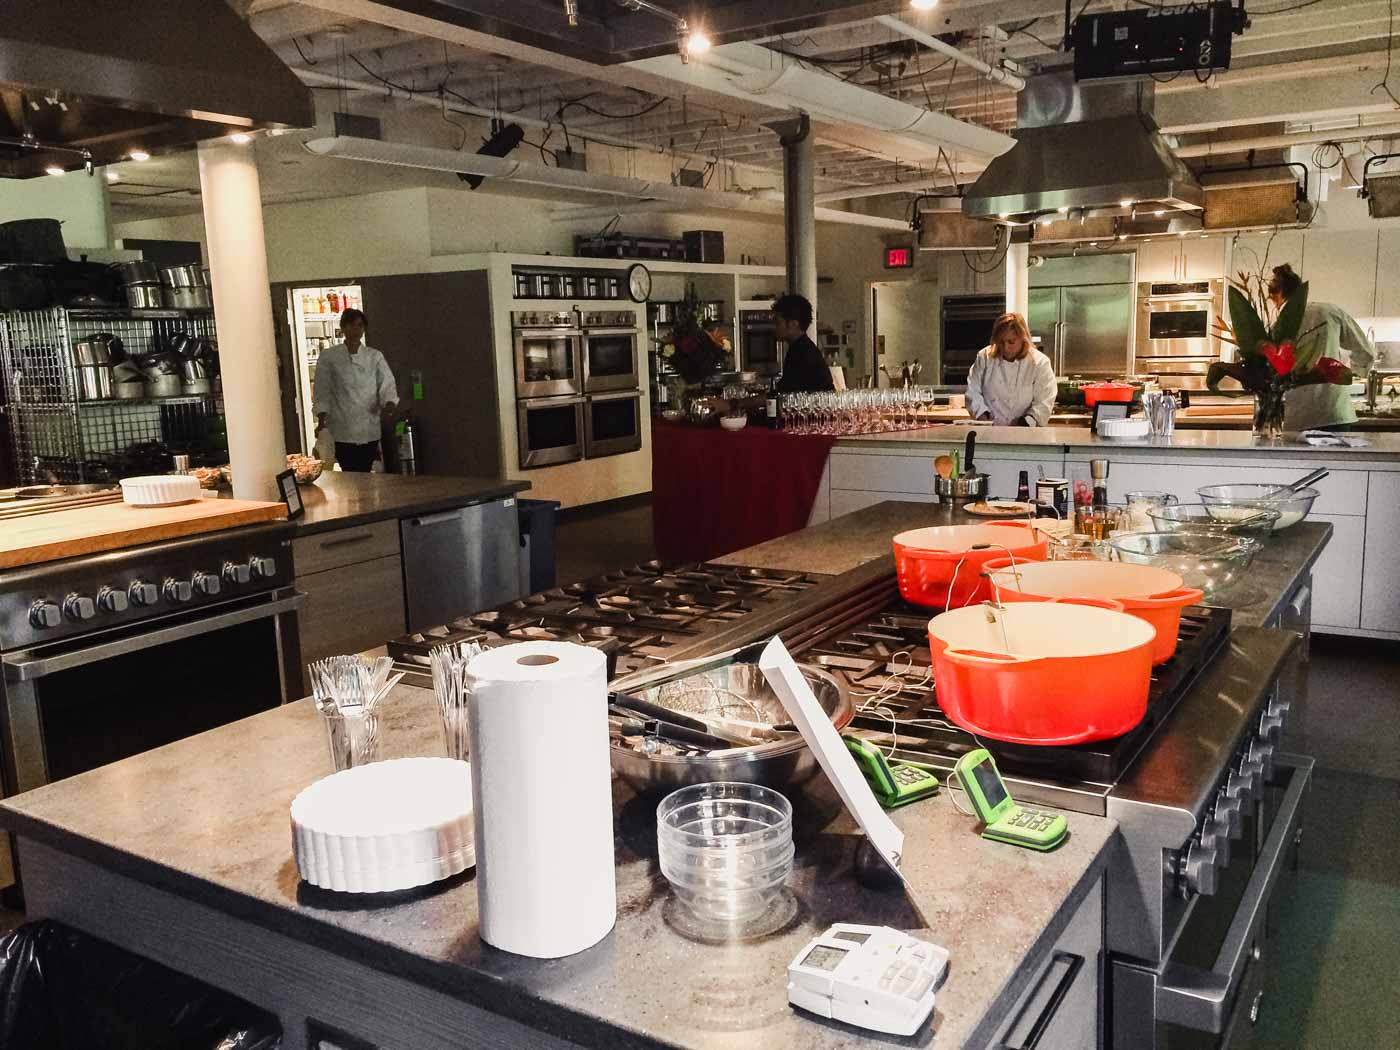 Photograph of America'sTest Kitchen with test cooks testing recipes